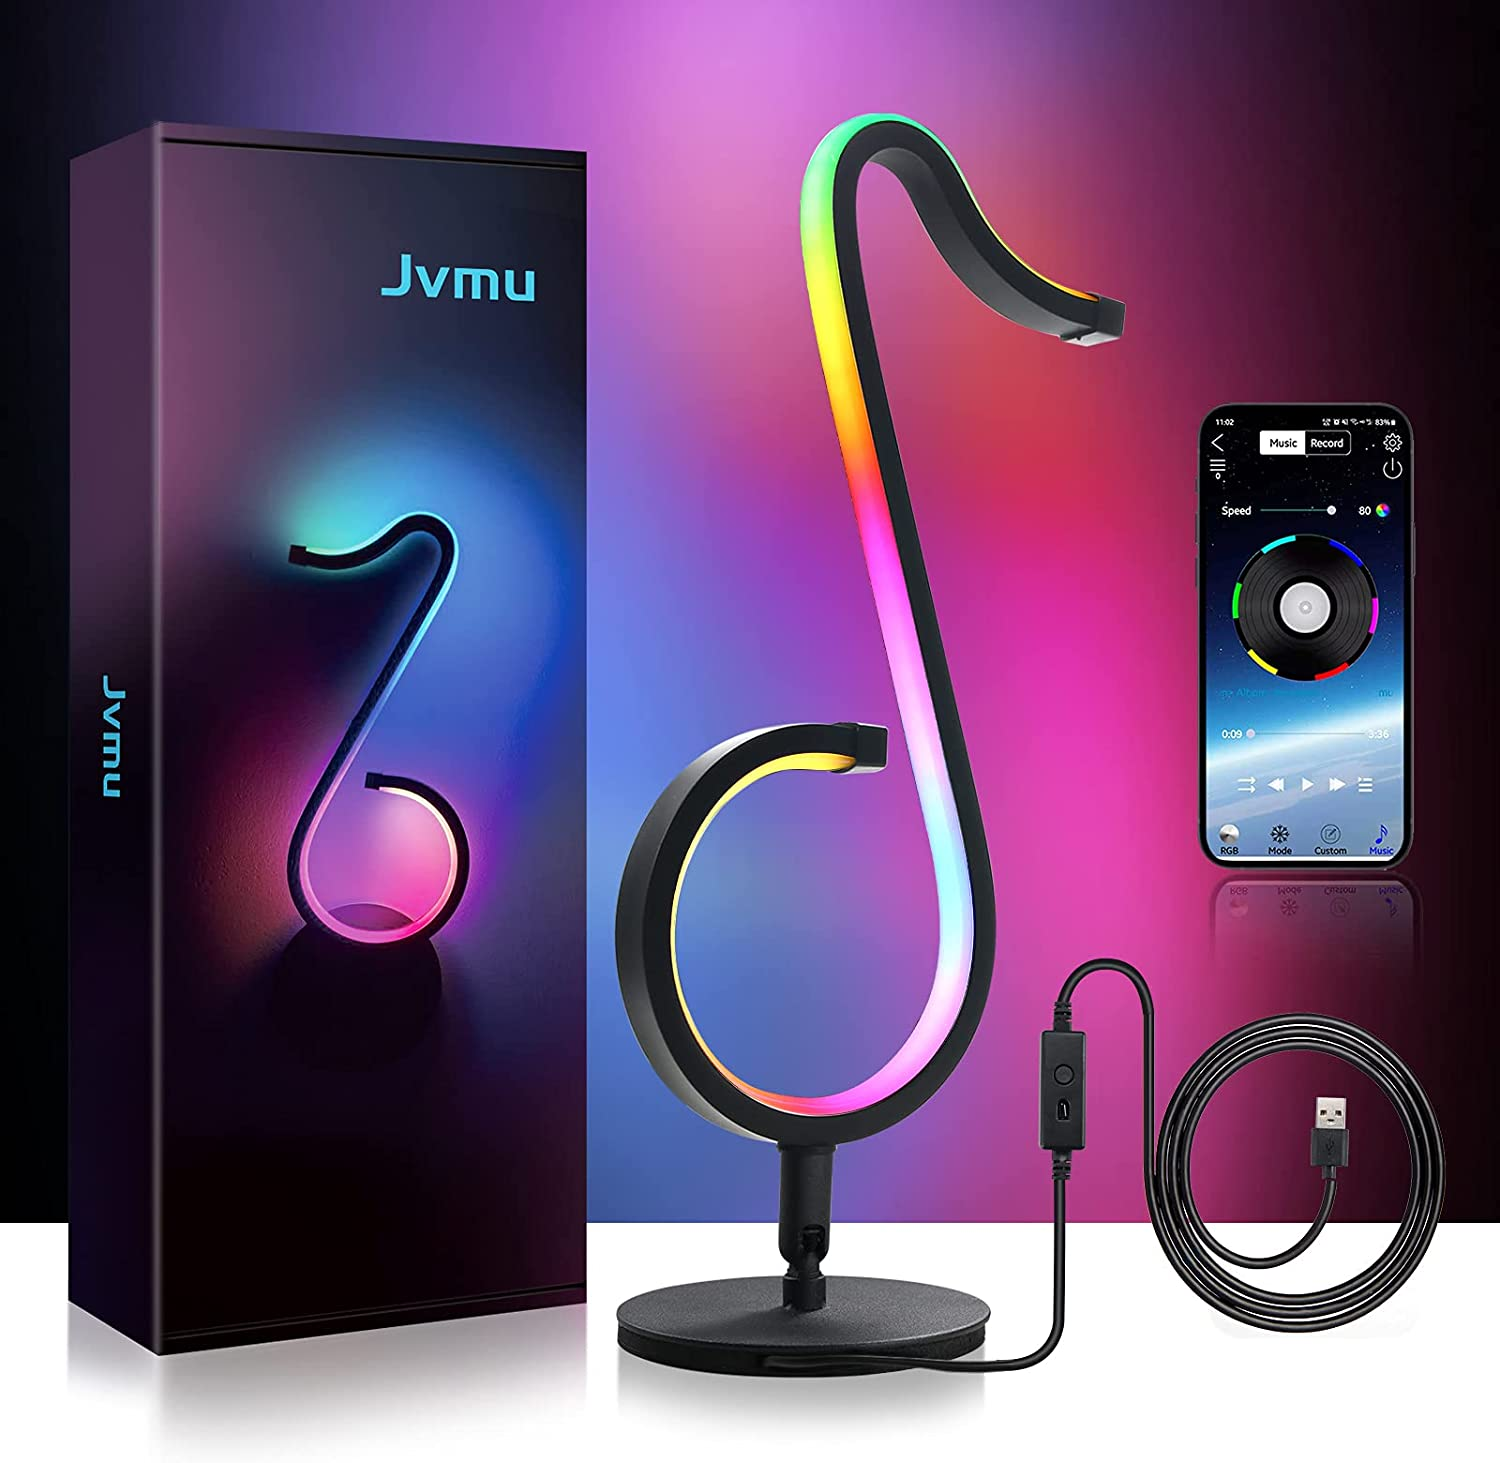 JVMU Table-Wall Modern-Lamp Music-Dimmable Smart-LED - 210 Mode APP Control Atmosphere Decor, Music Record Sync, Media Moment Live Streaming Background, USB Adapter, Bright 10W Lamp